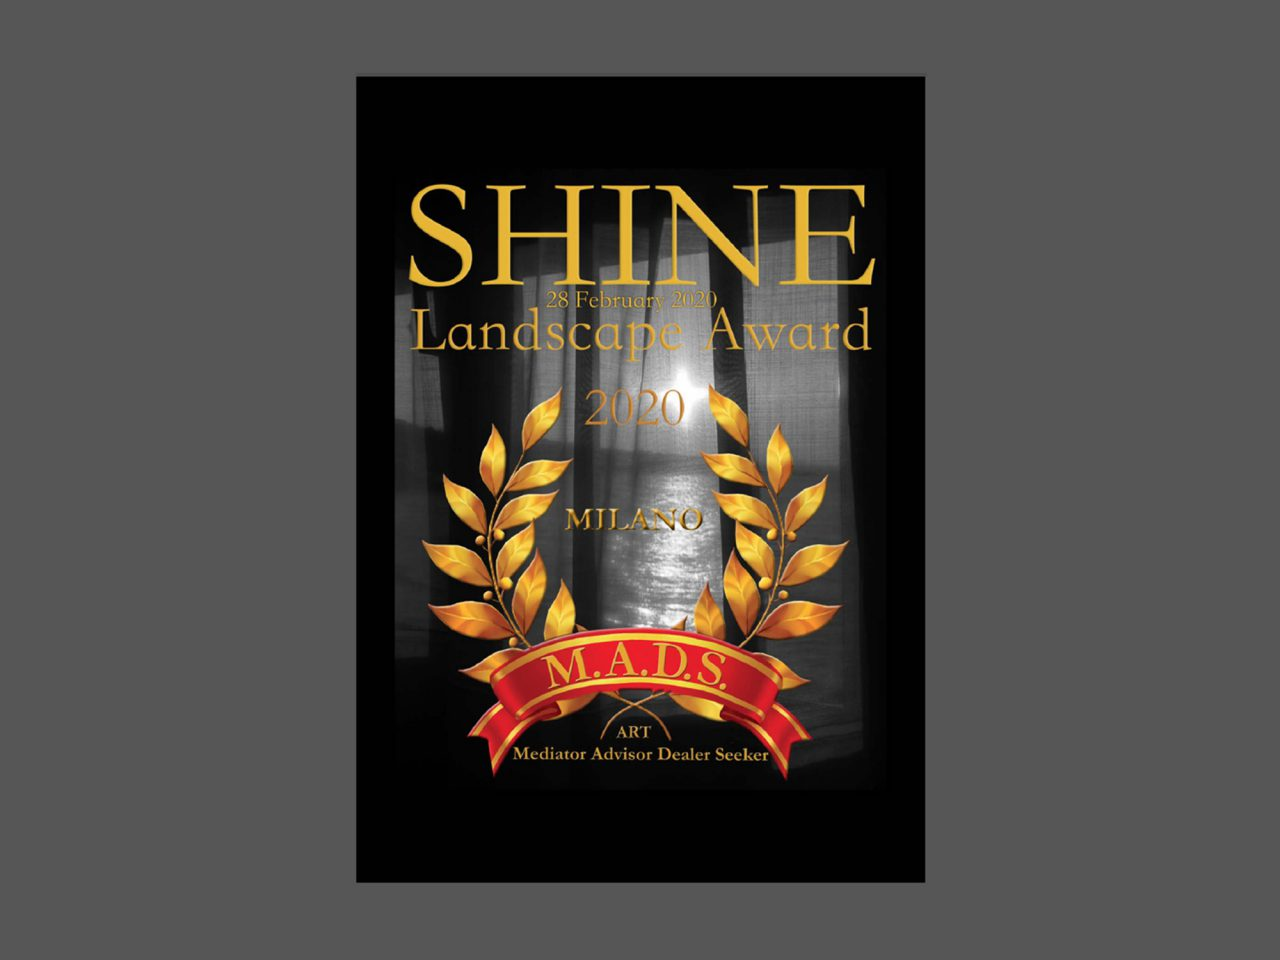 SHINE LANDSCAPE AWARD  International Contemporary Art Exhibition image